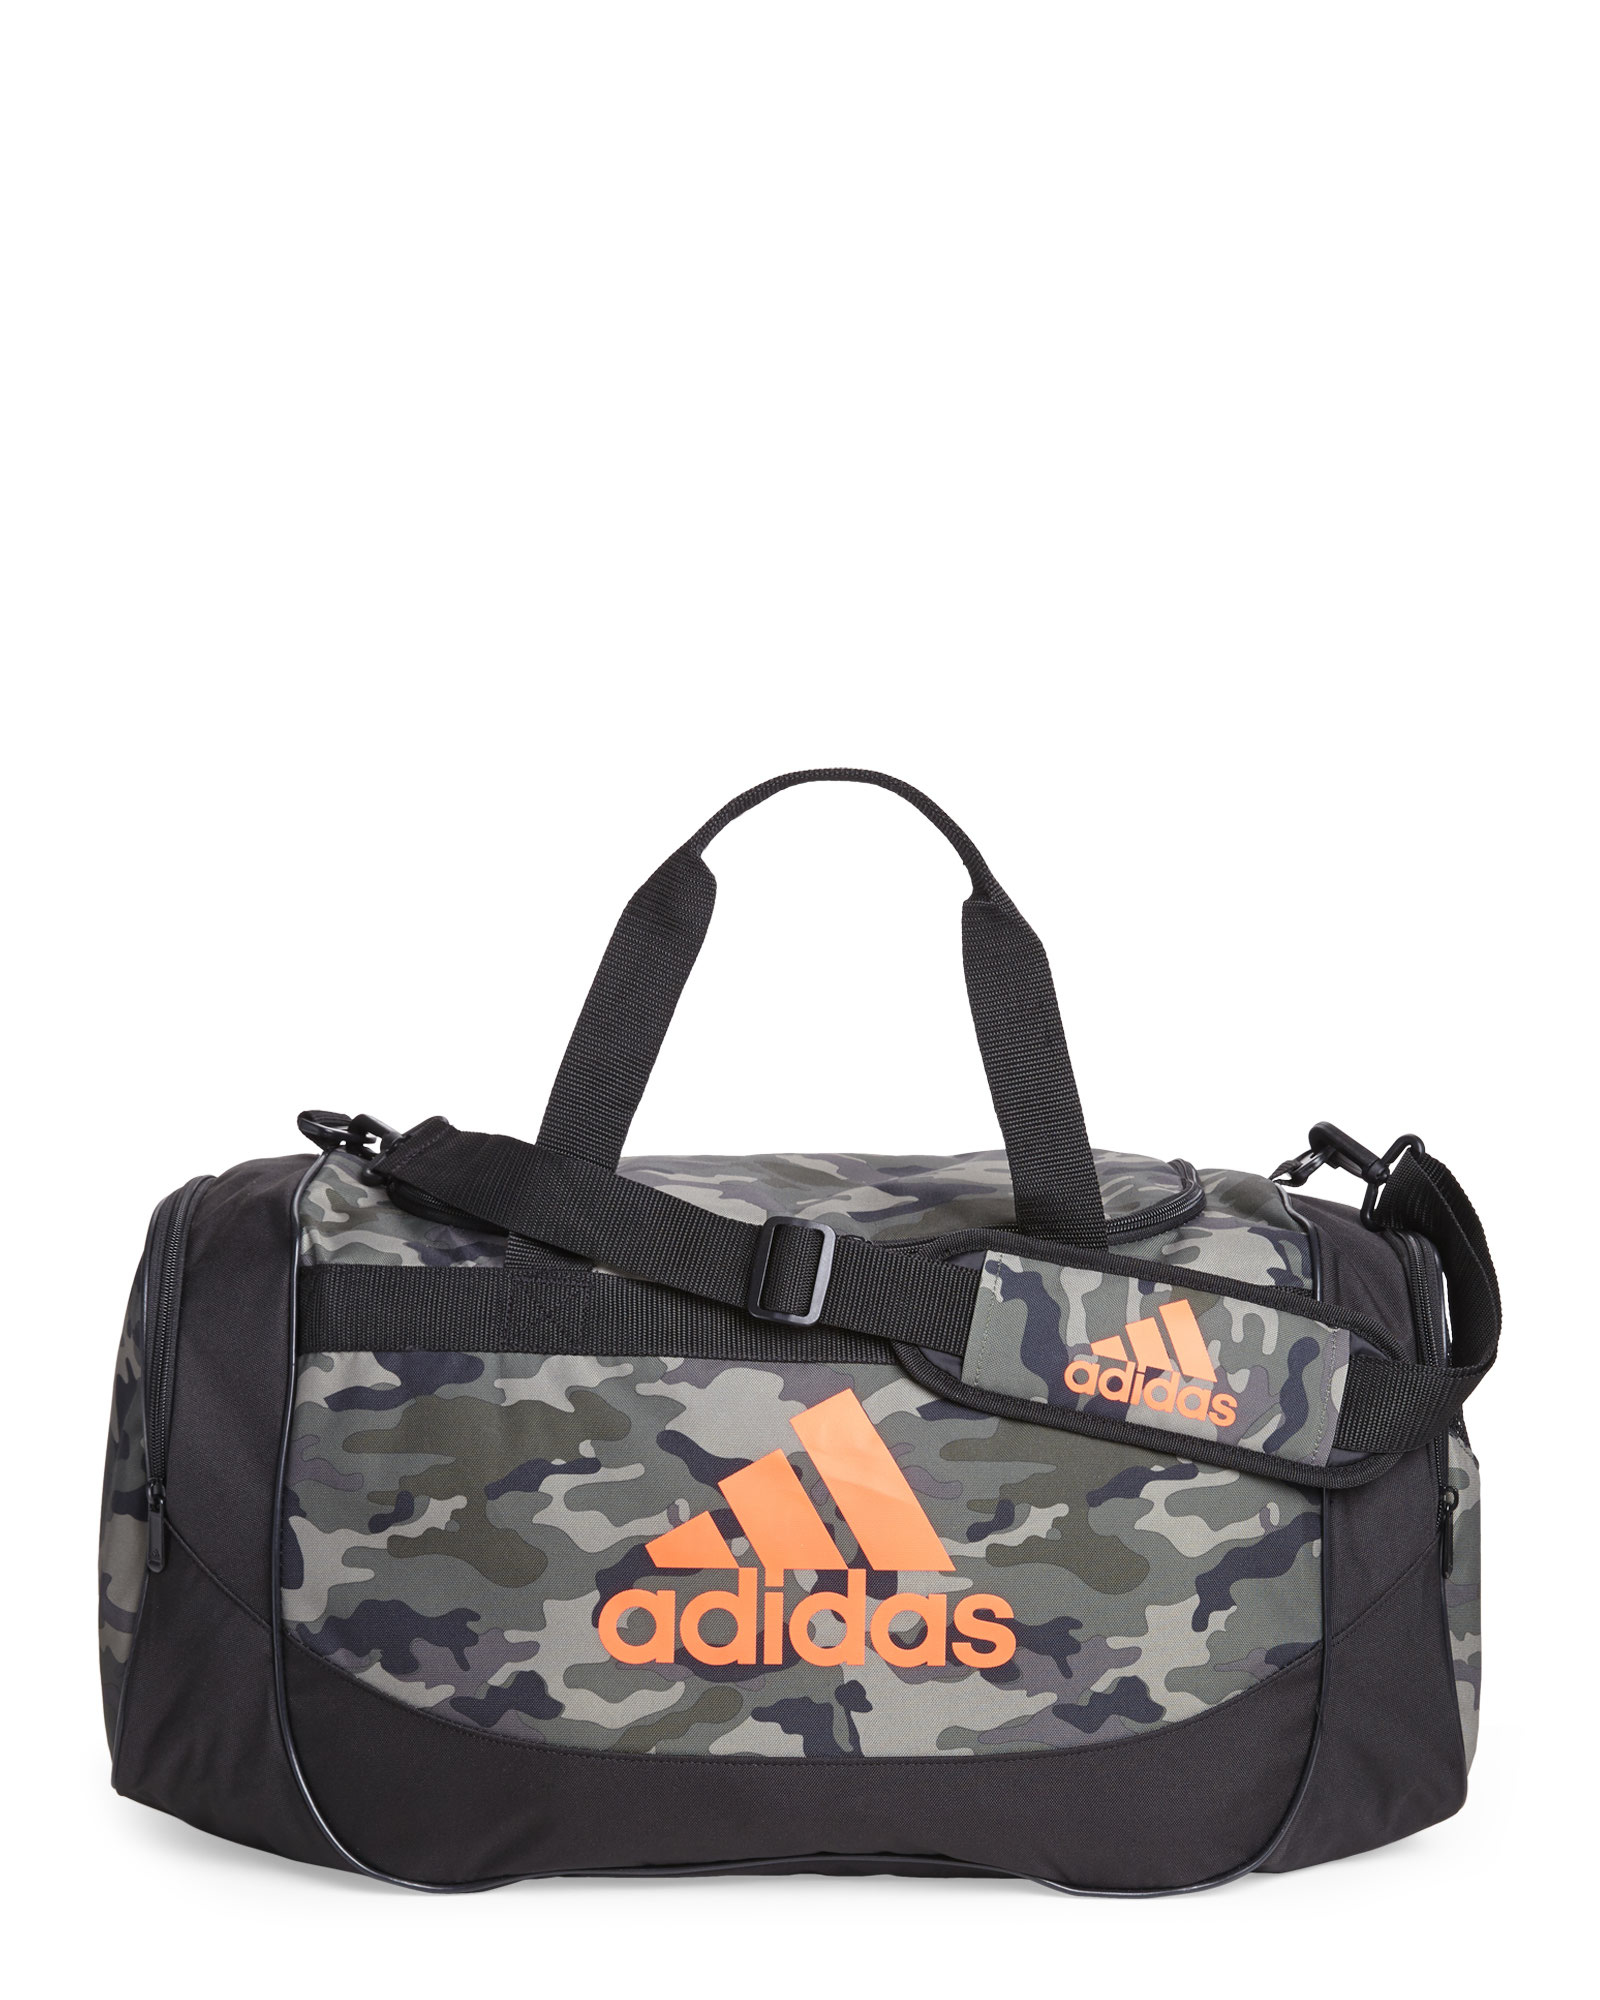 03397d416c0a Lyst - adidas Camouflage Defense Medium Duffel Bag in Black for Men